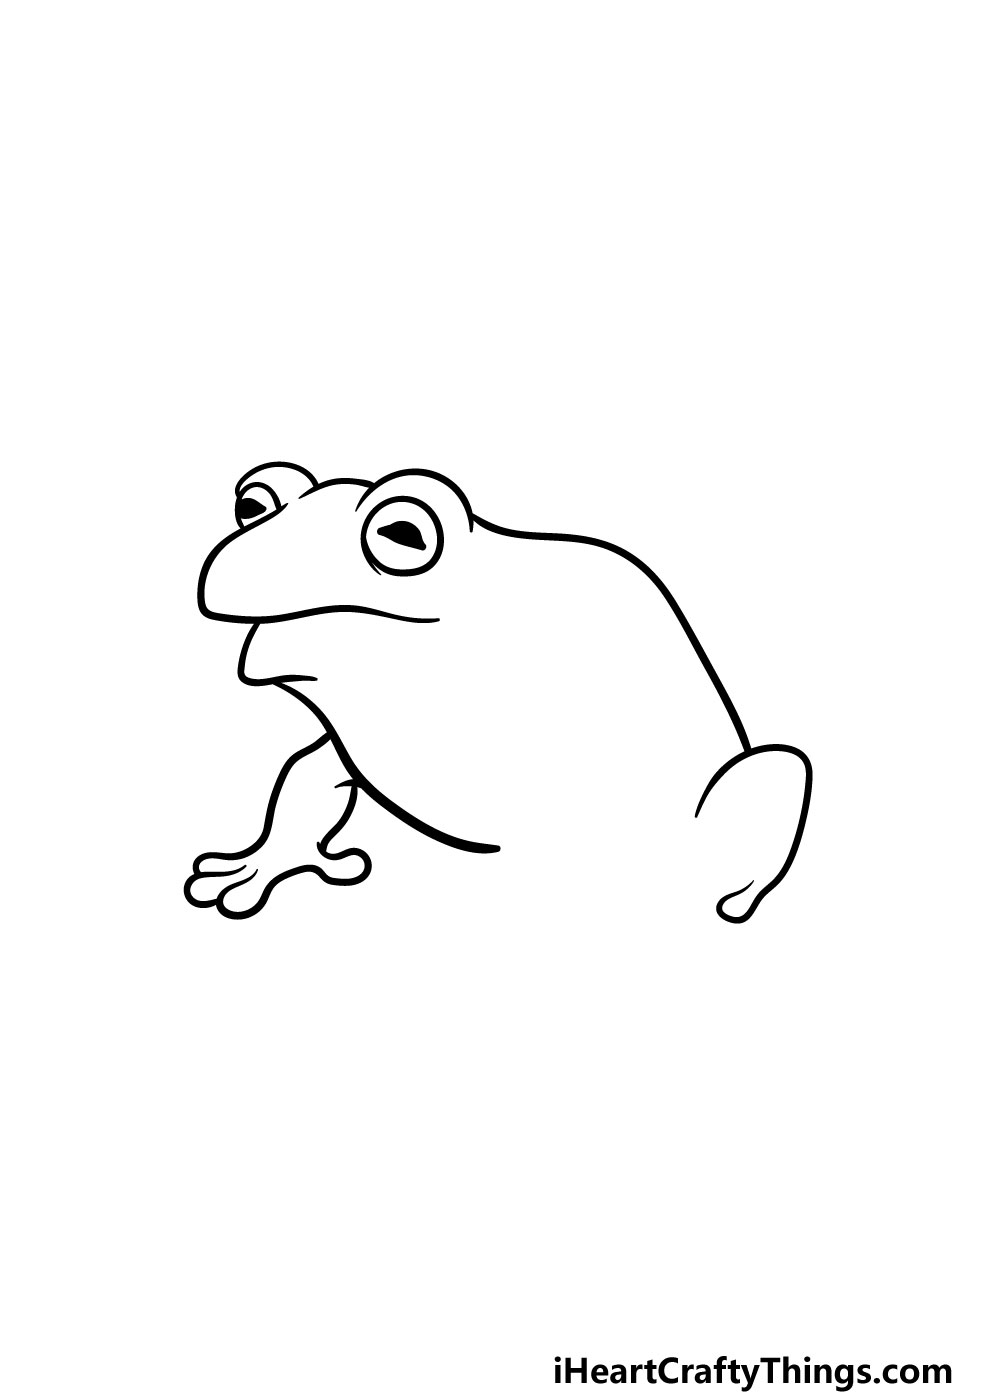 drawing a toad step 3